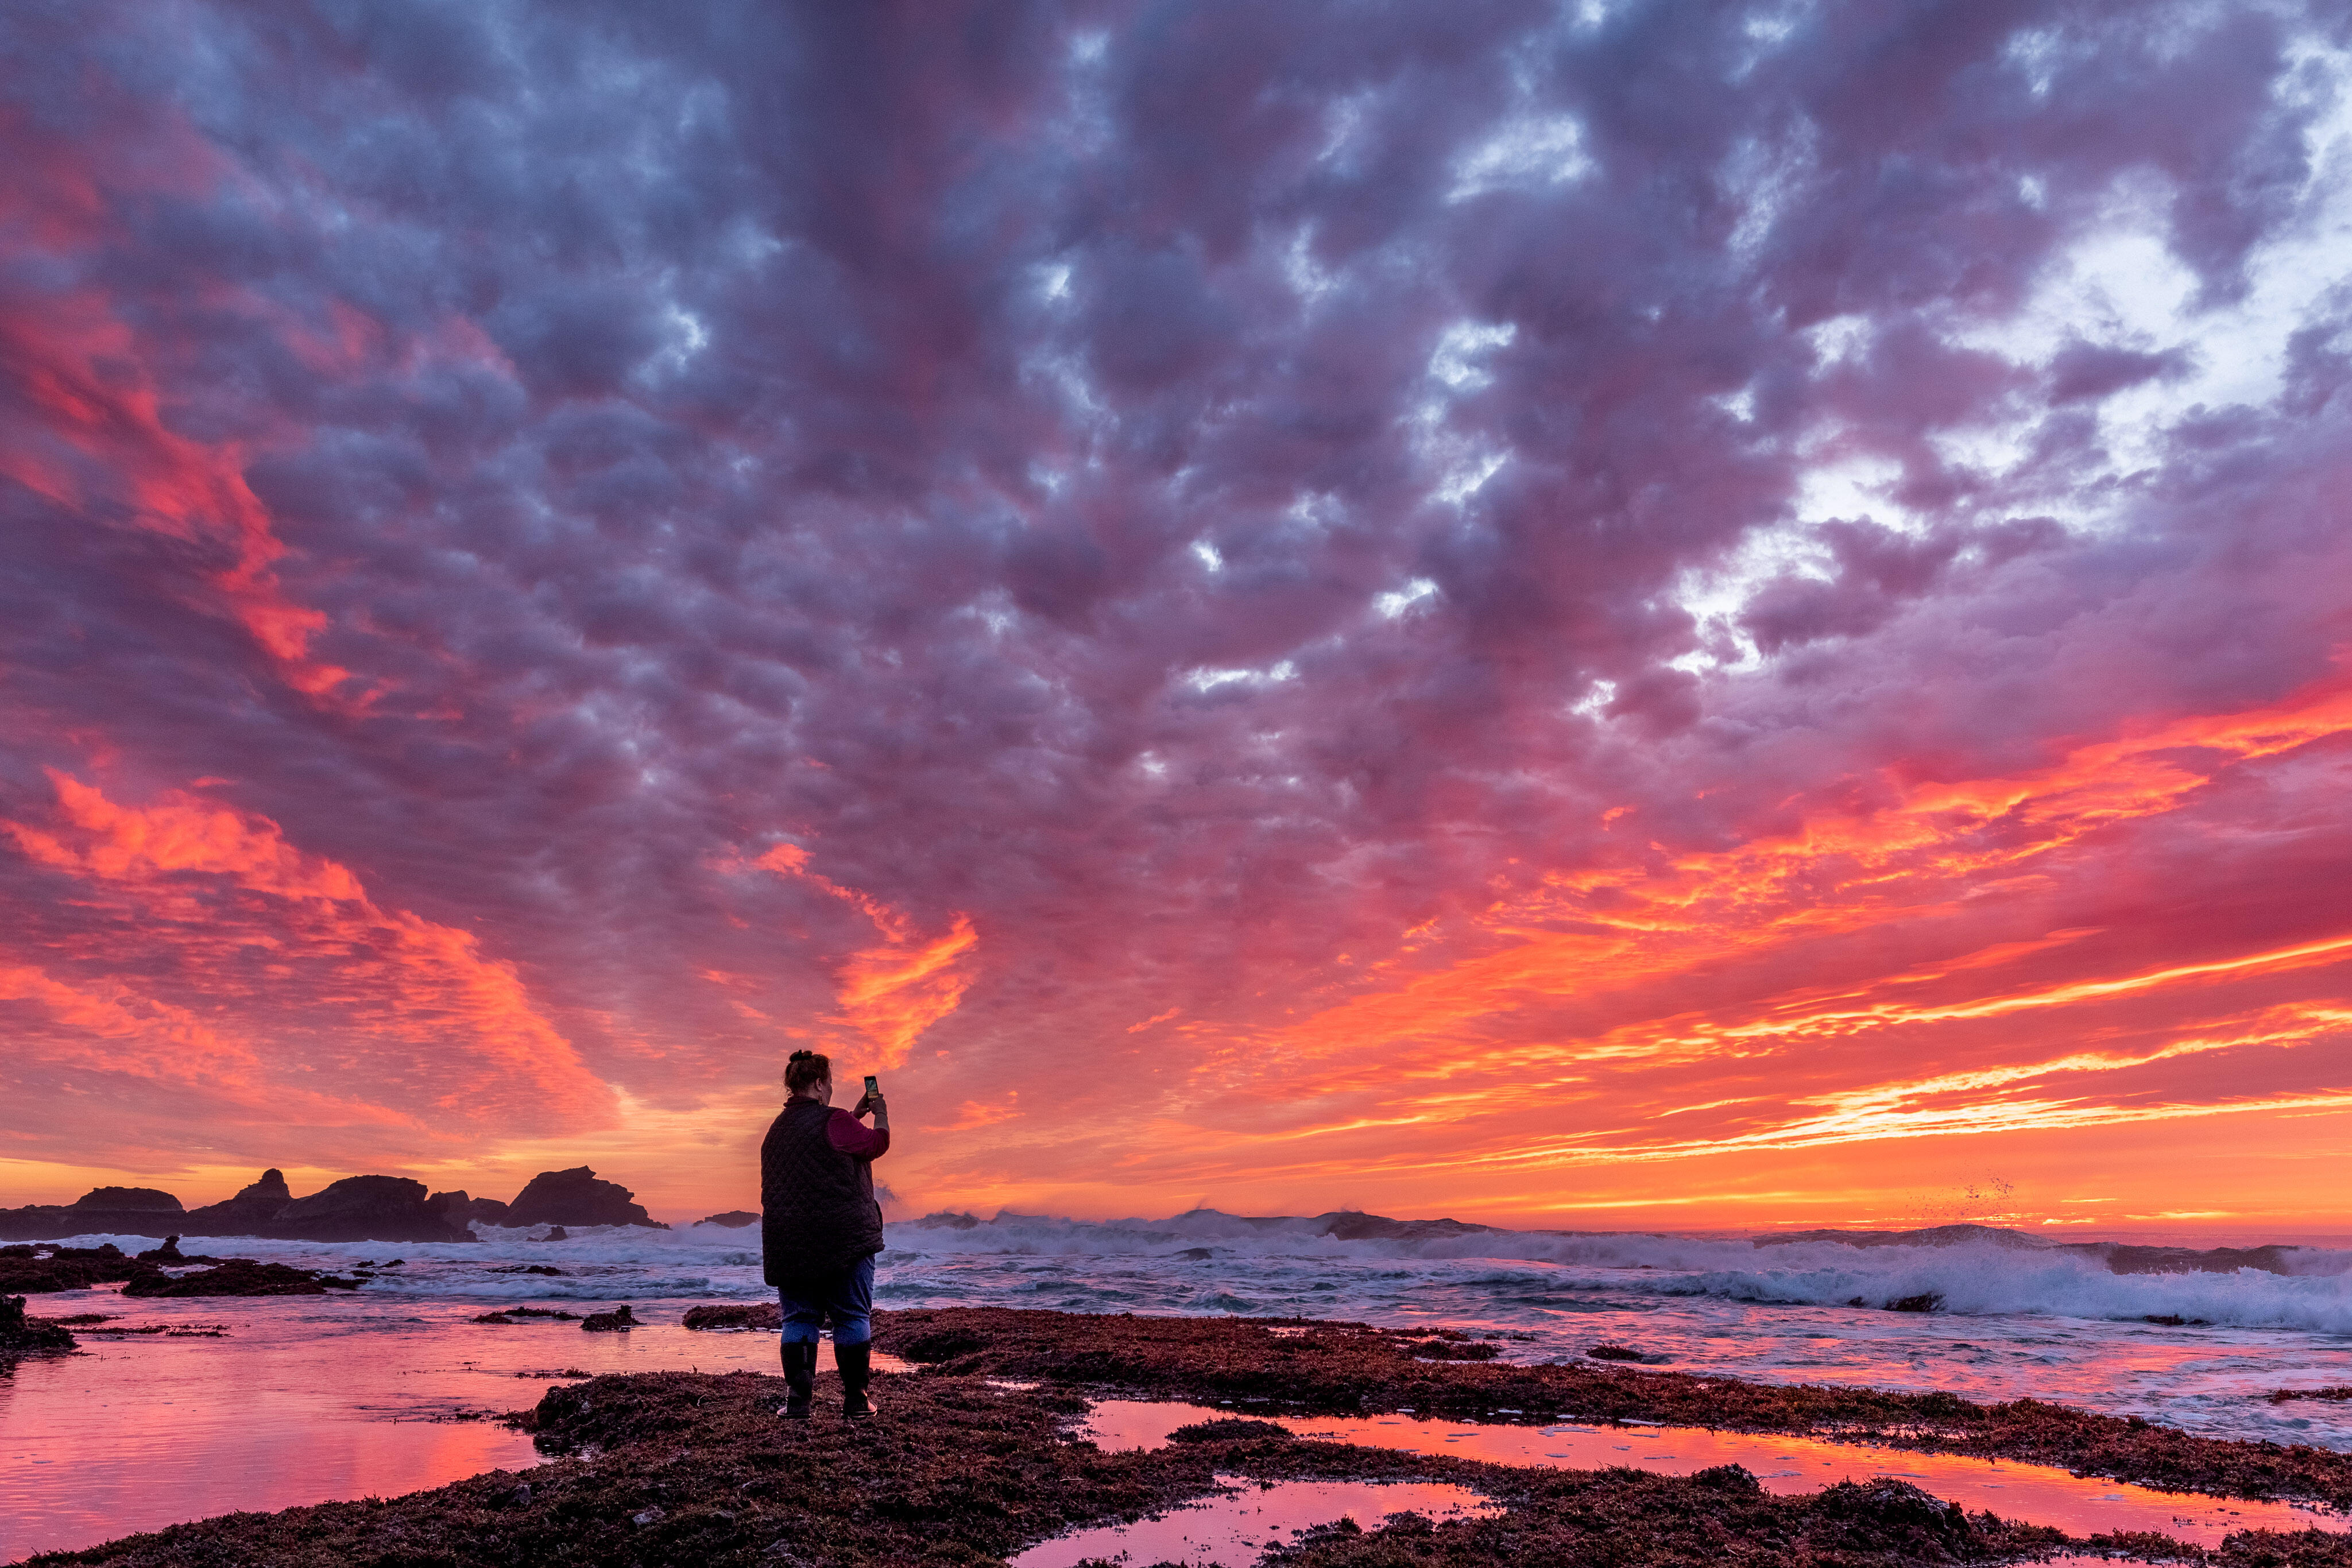 Alison Young photographs a brilliant sunset just after low tide at Pillar Point about 15 miles south of San Francisco. The rocks of Pillar Point just out into the Pacific Ocean toward the left; the Mavericks surfing competition takes place in the waves to